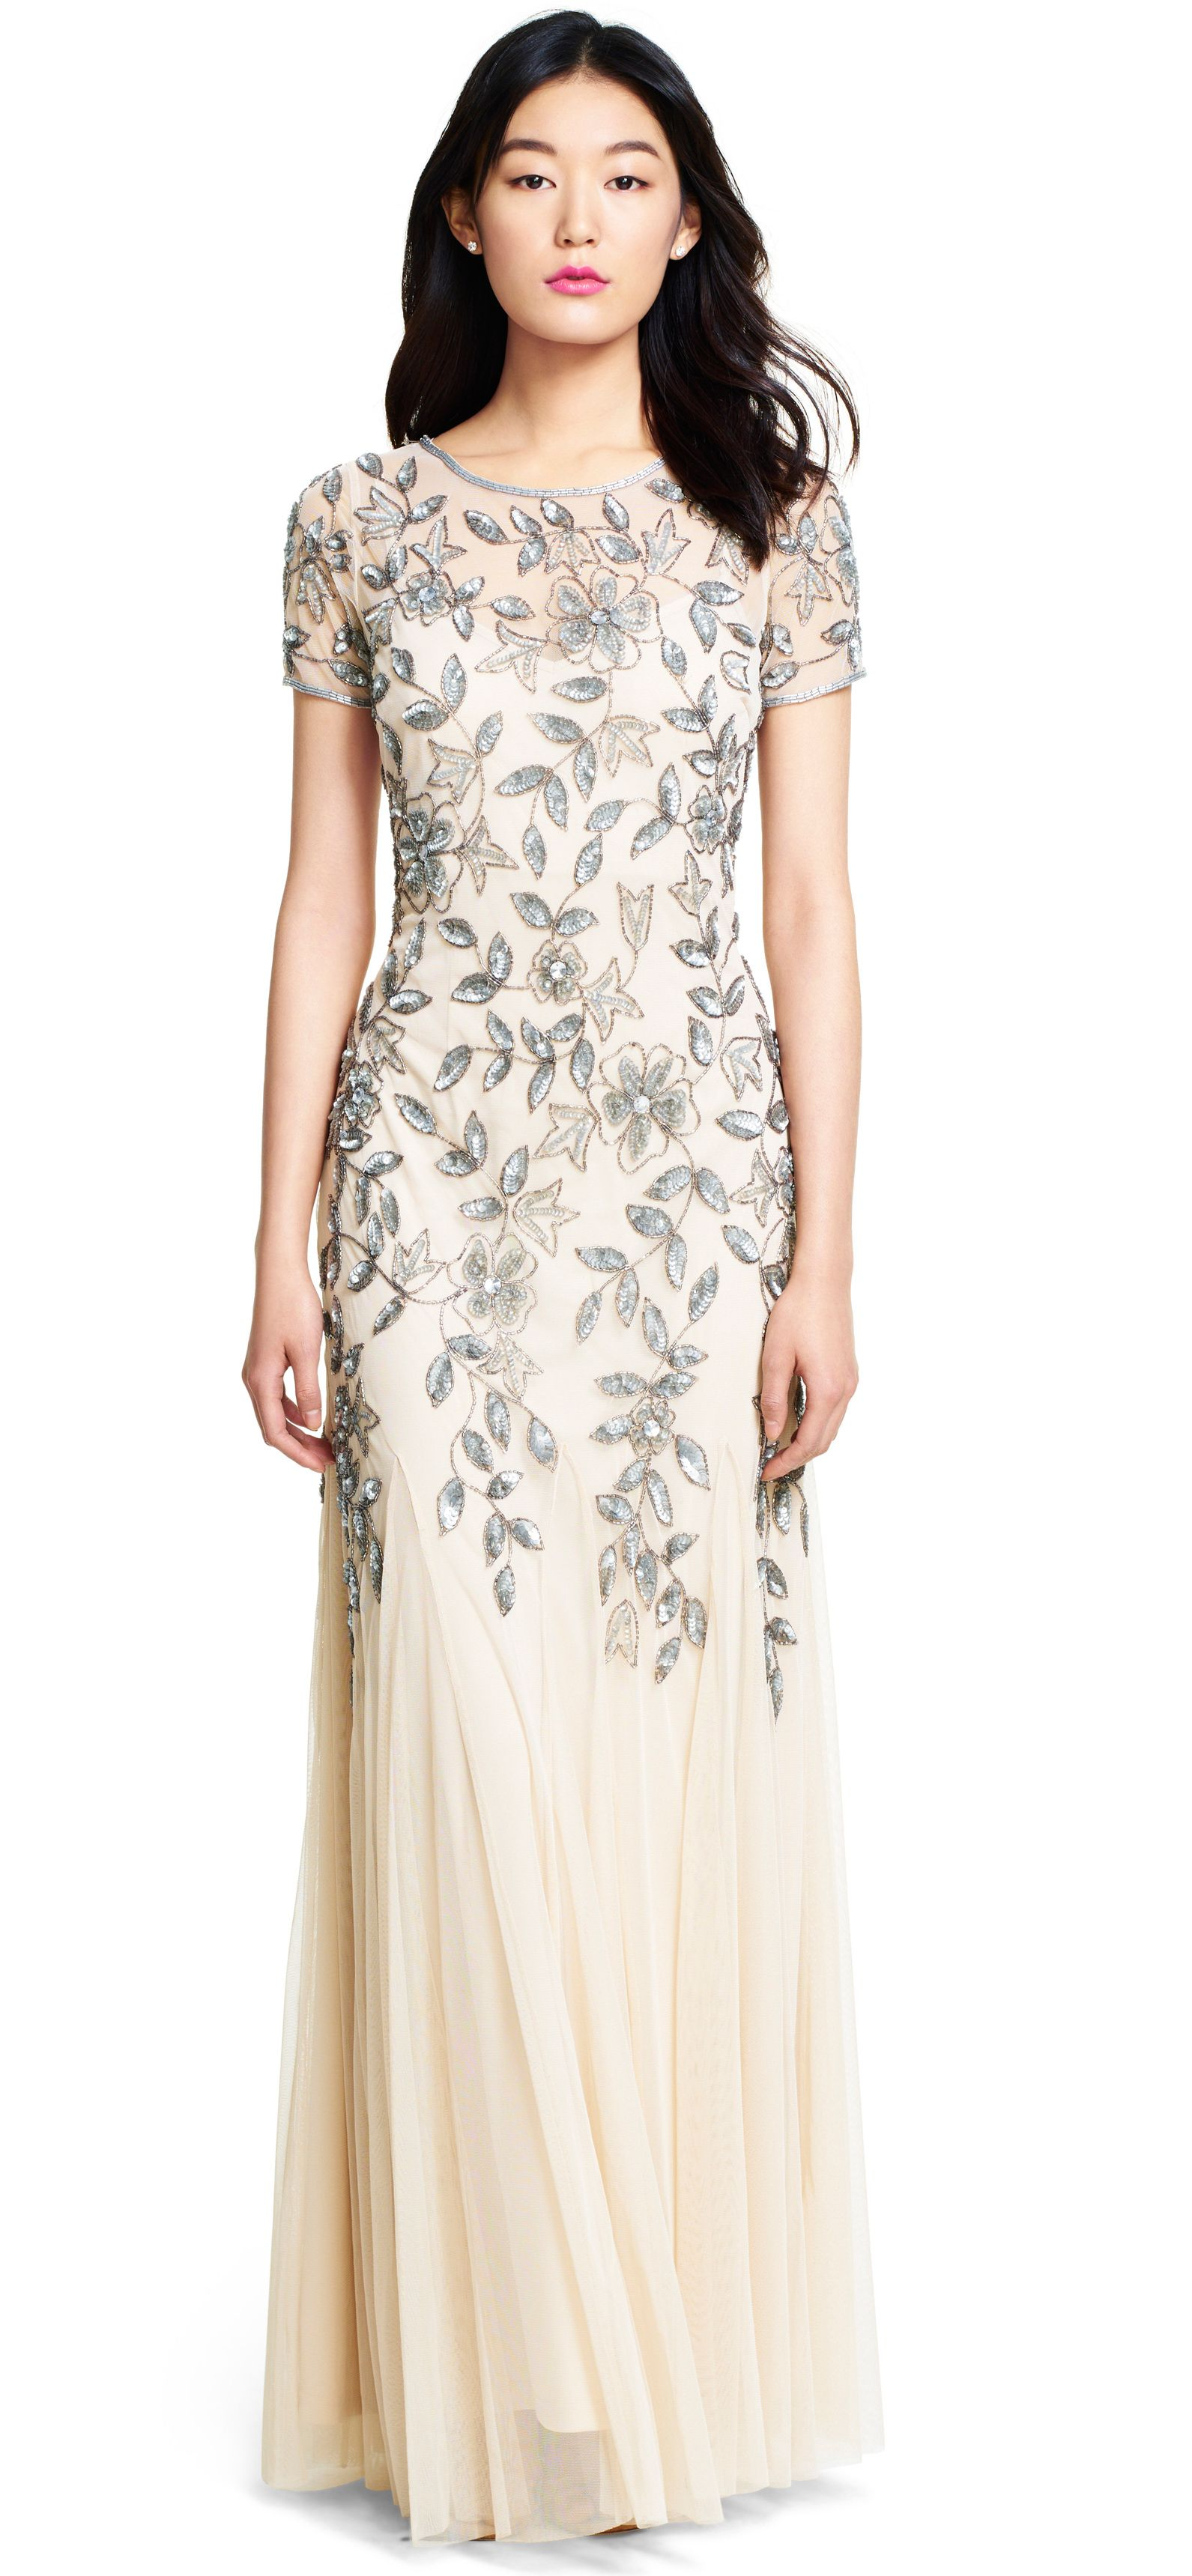 Floral beaded godet gown with short sleeves adrianna papell gowns